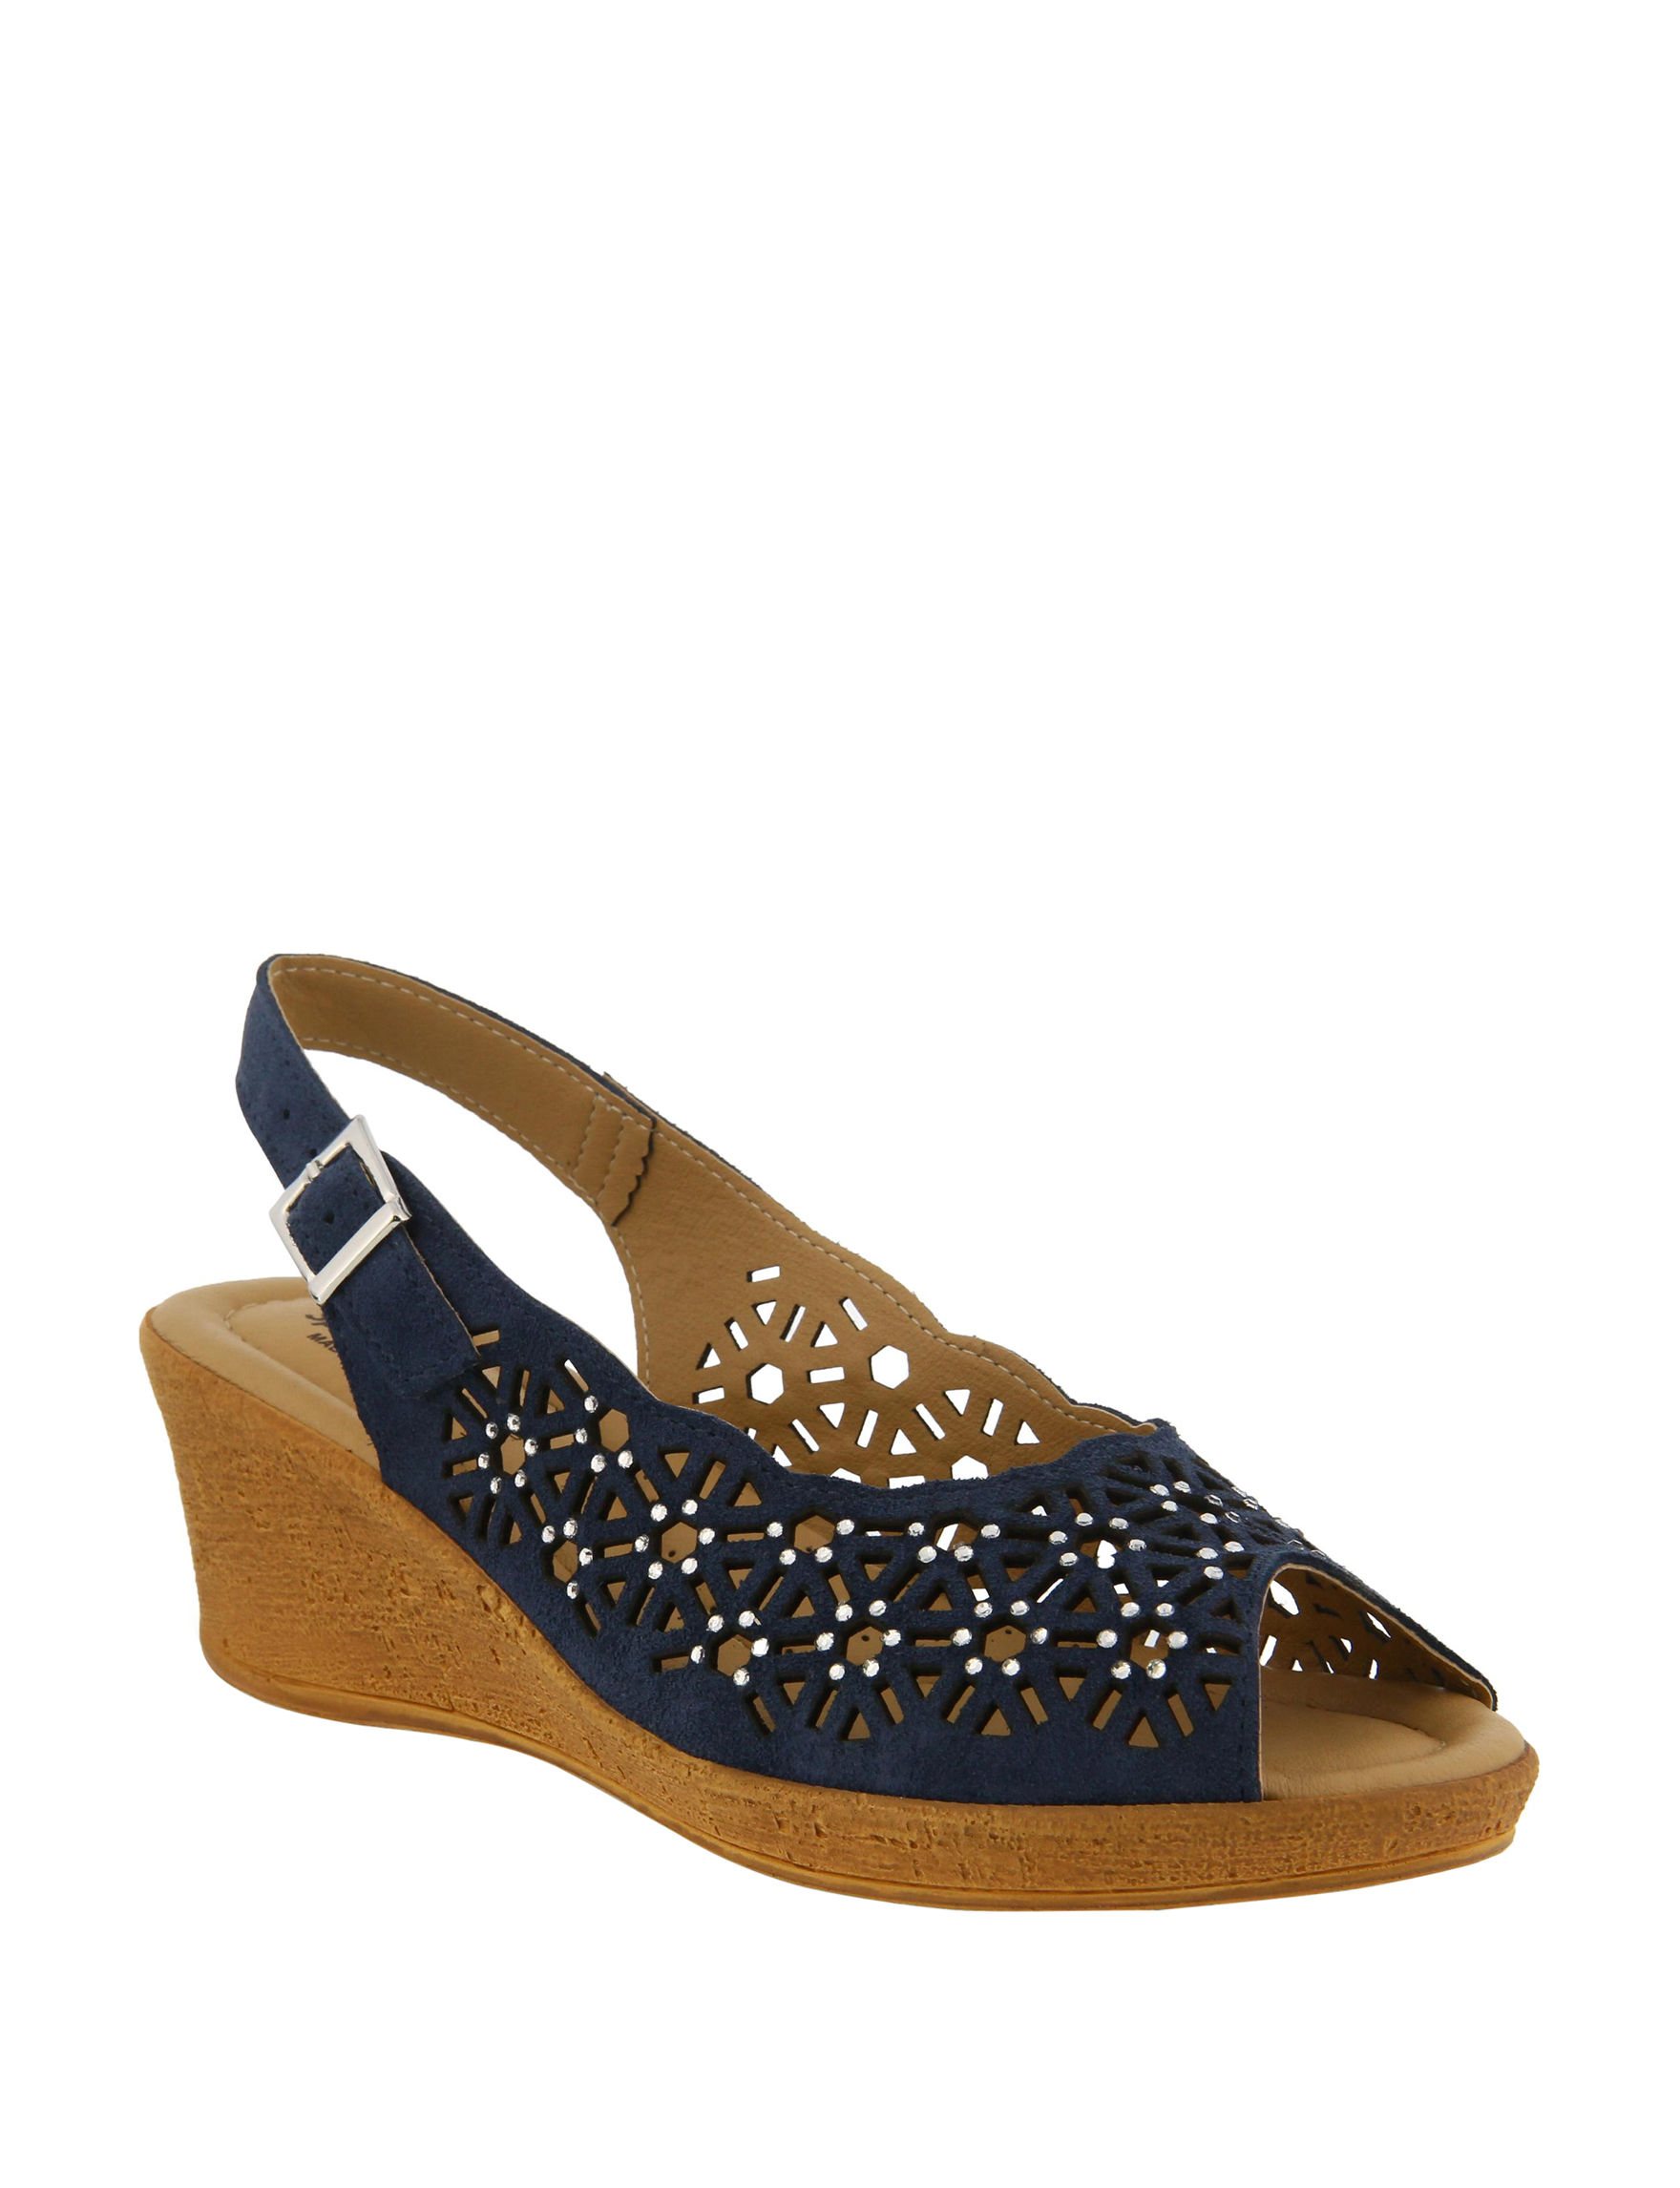 Spring Step Navy Wedge Sandals